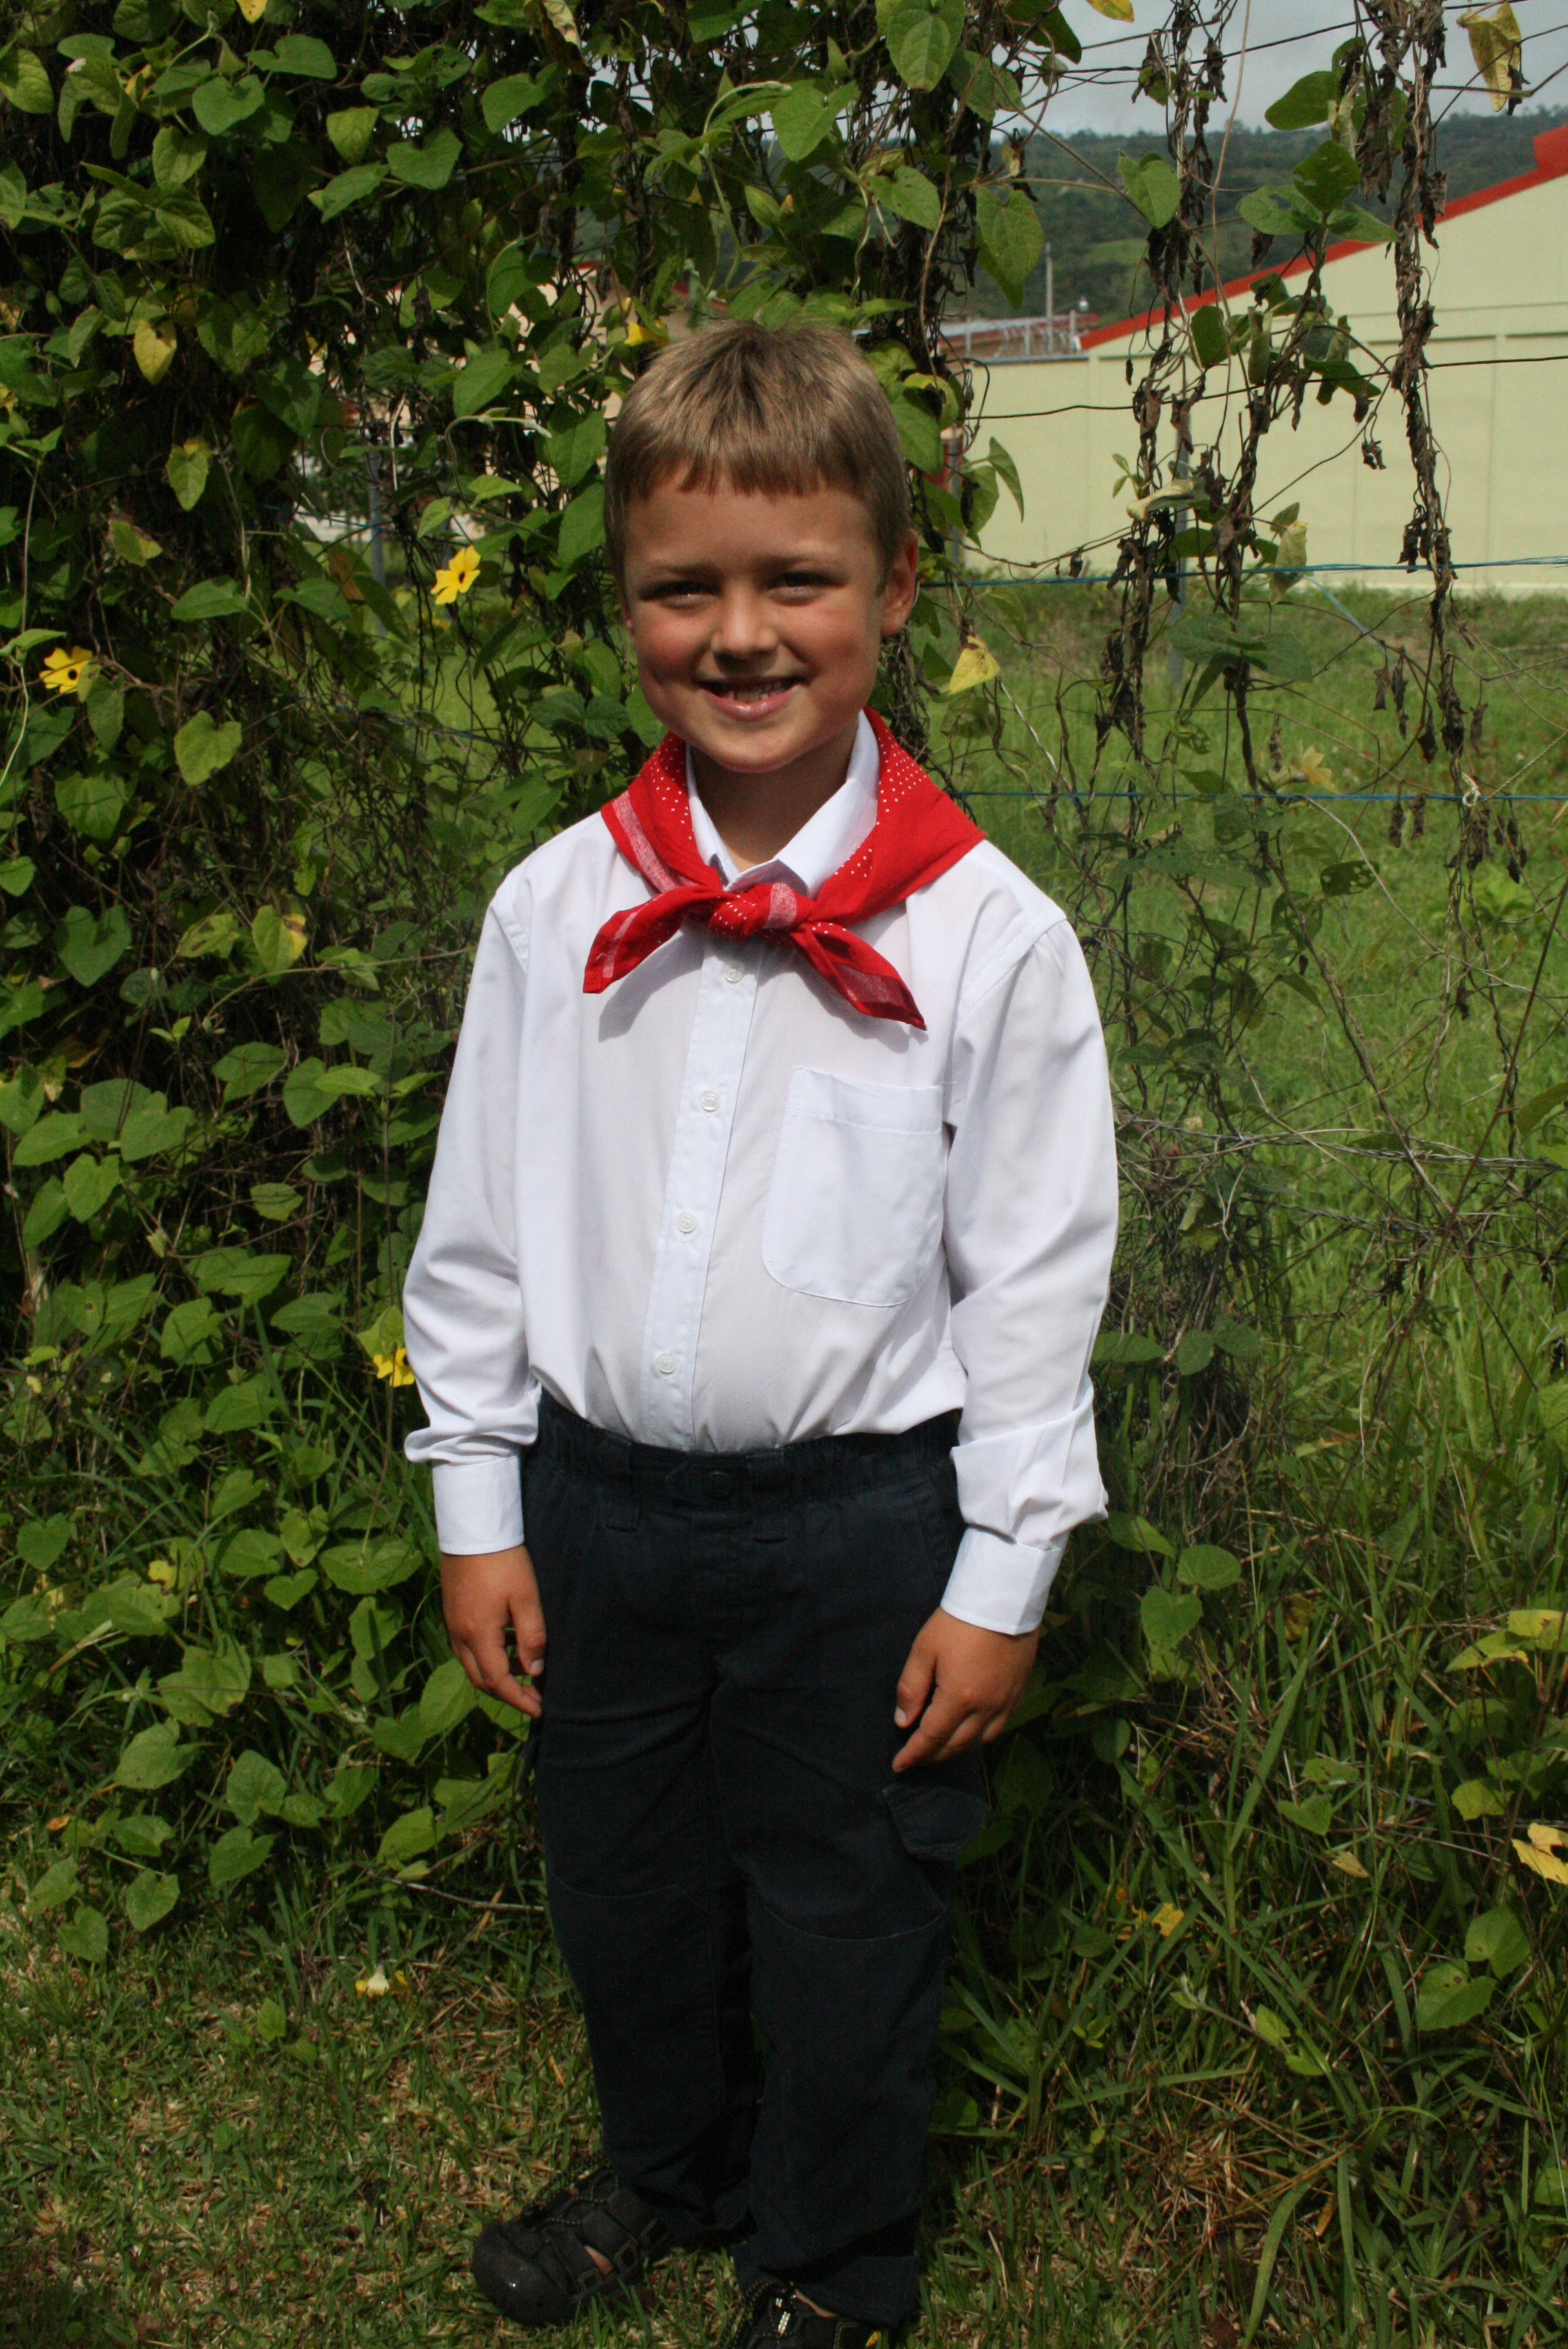 Rain, ants & costumes | 1 year in ArgentinaMexican Traditional Clothing For Boys